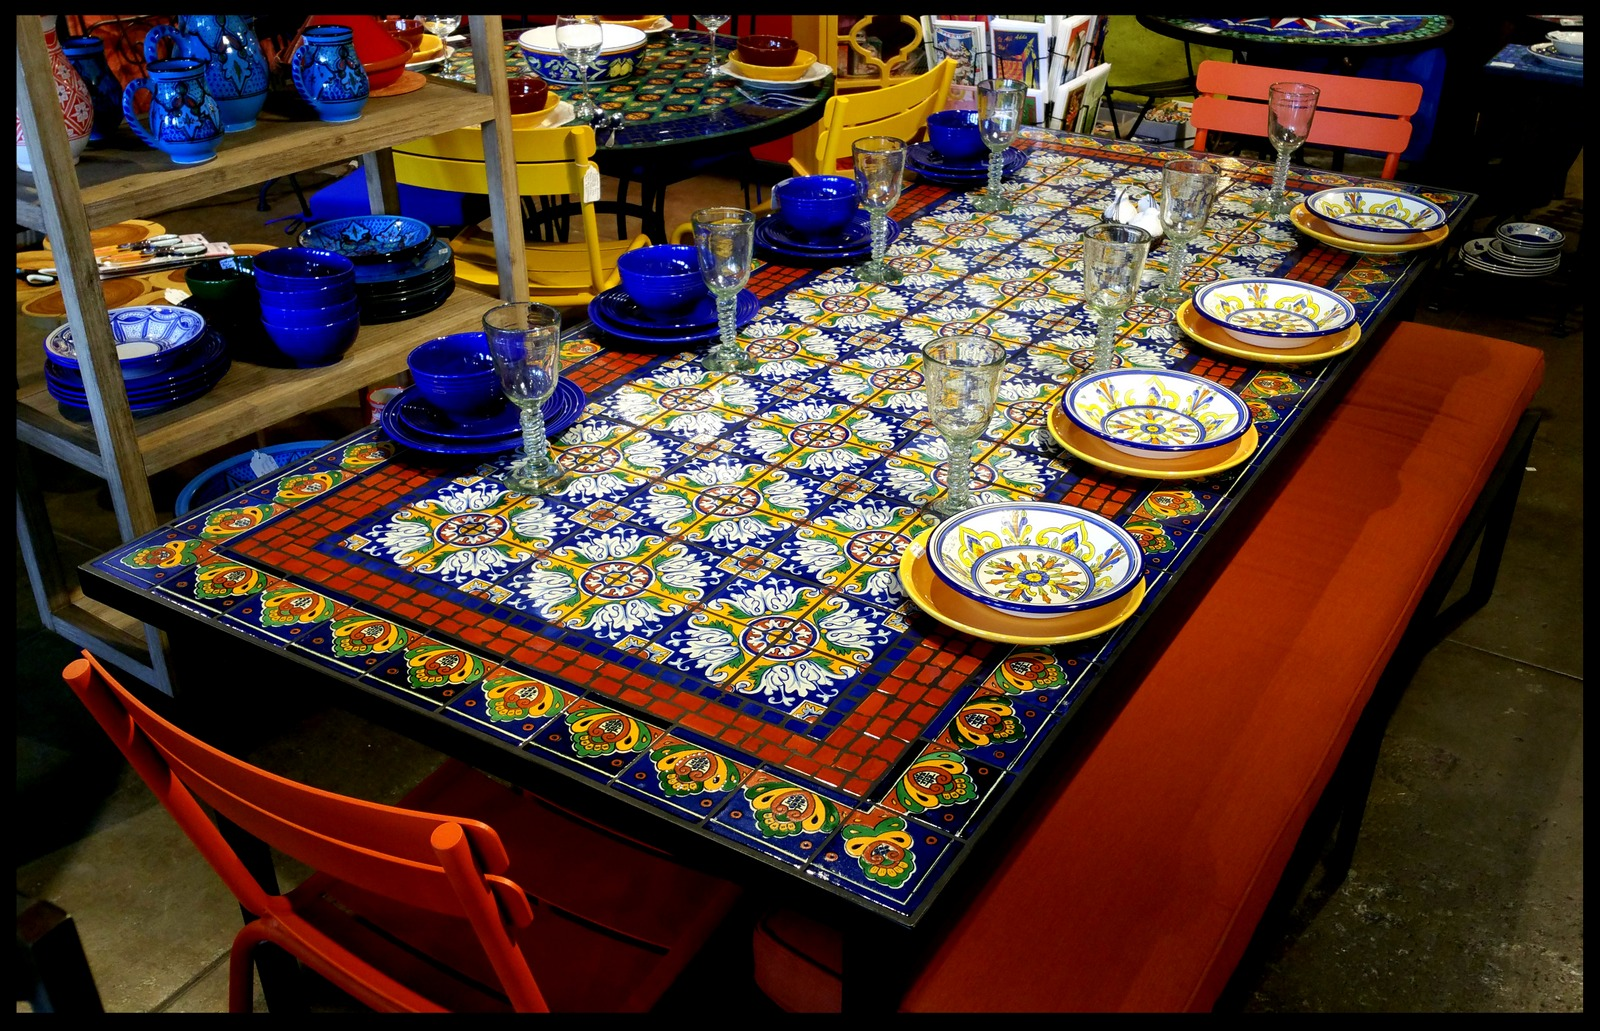 Marvelous TILE MOSAIC DINING TABLE GOTIGO